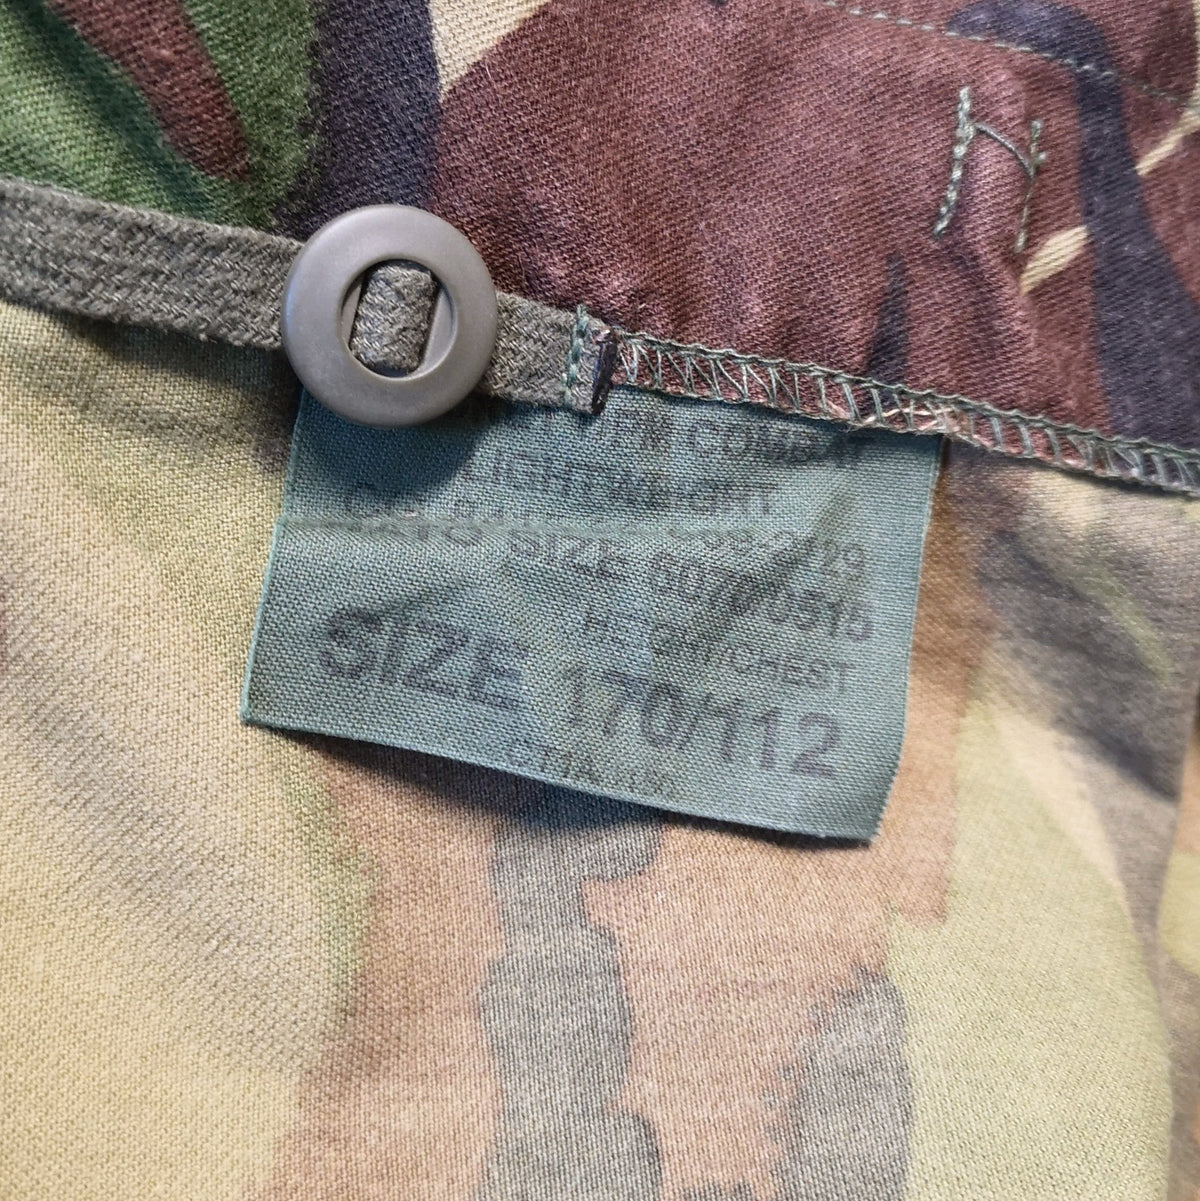 Vintage 90s British Army Desert Rats Combat DPM Camo Jacket Lightweight L INNER LABEL